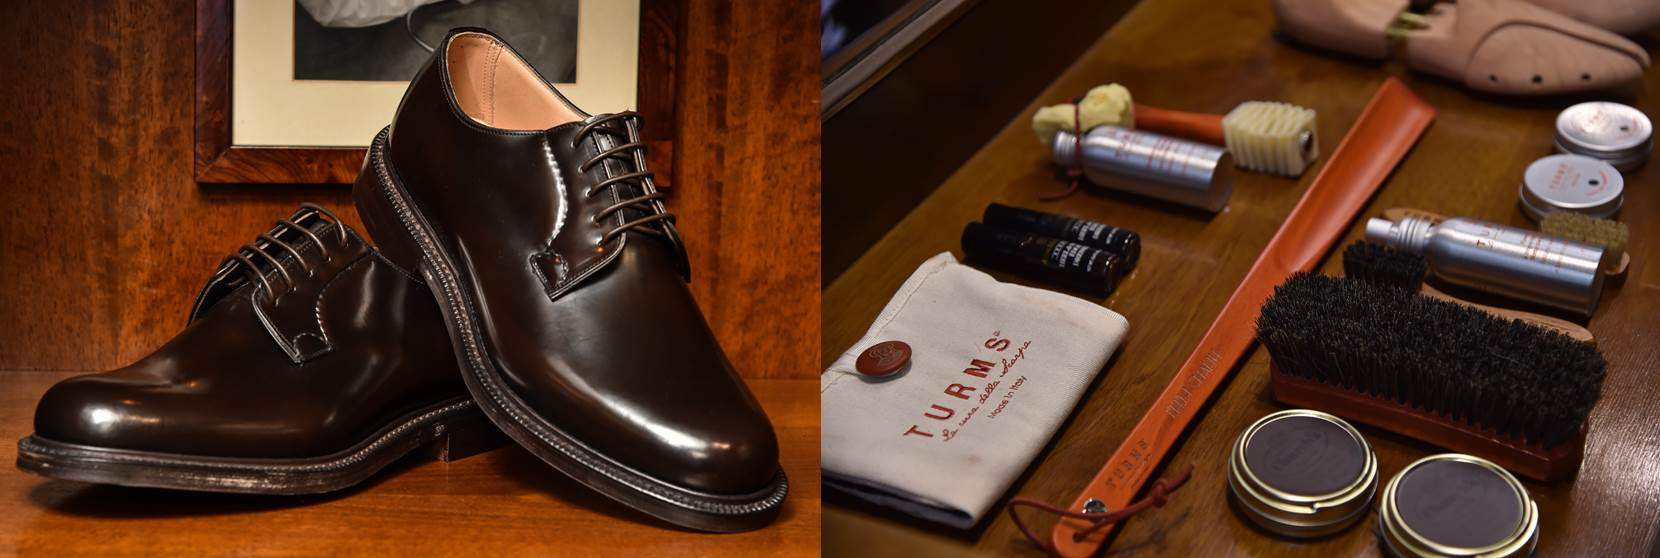 "regali di Natale per lui - scarpe Shannon"" di Church's e William di John Lobb"